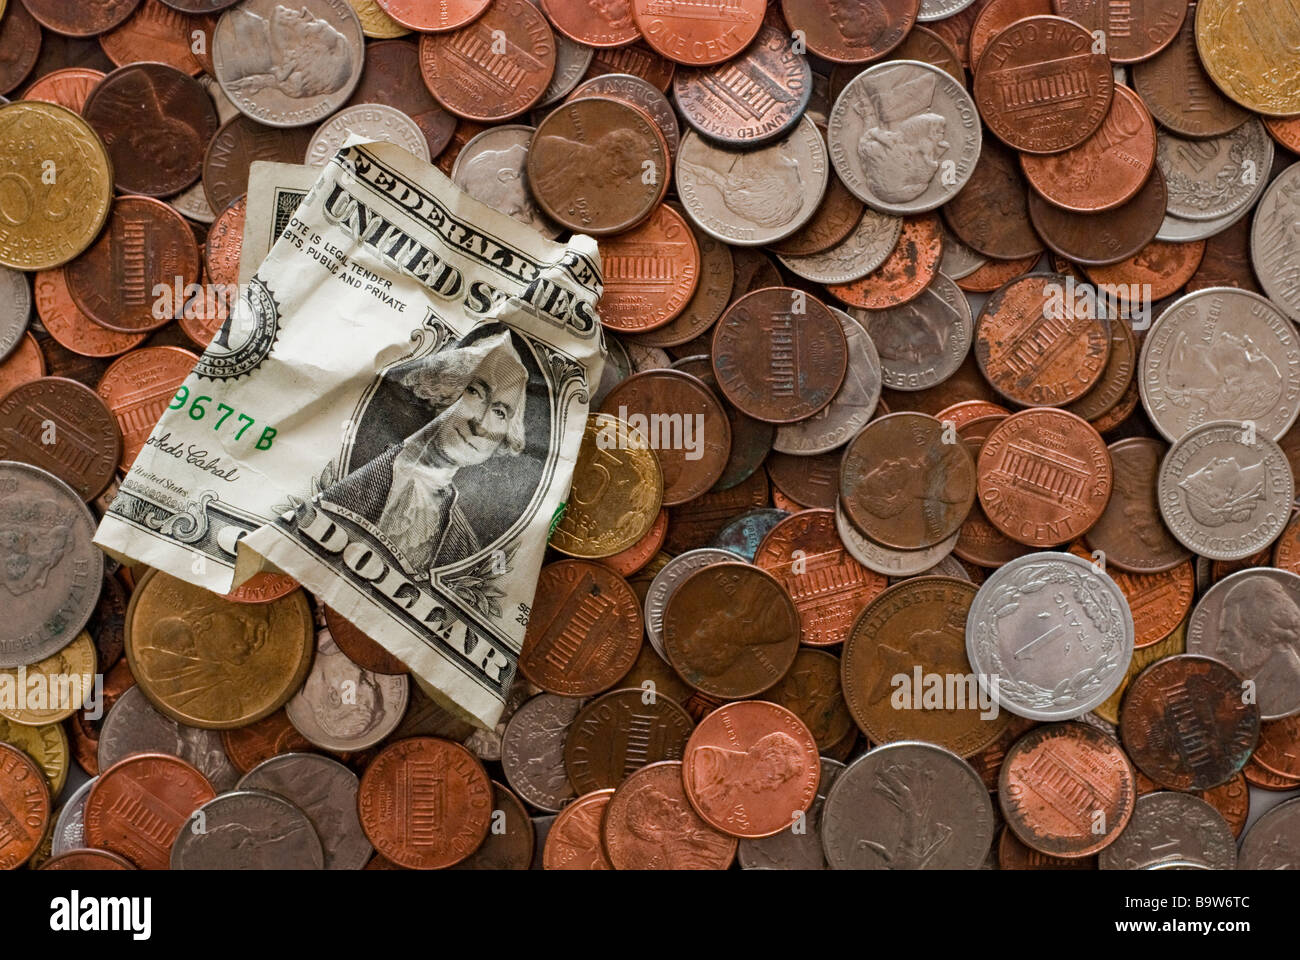 A crumpled dollar bill on top of a layer of coins of multiple currencies - Stock Image